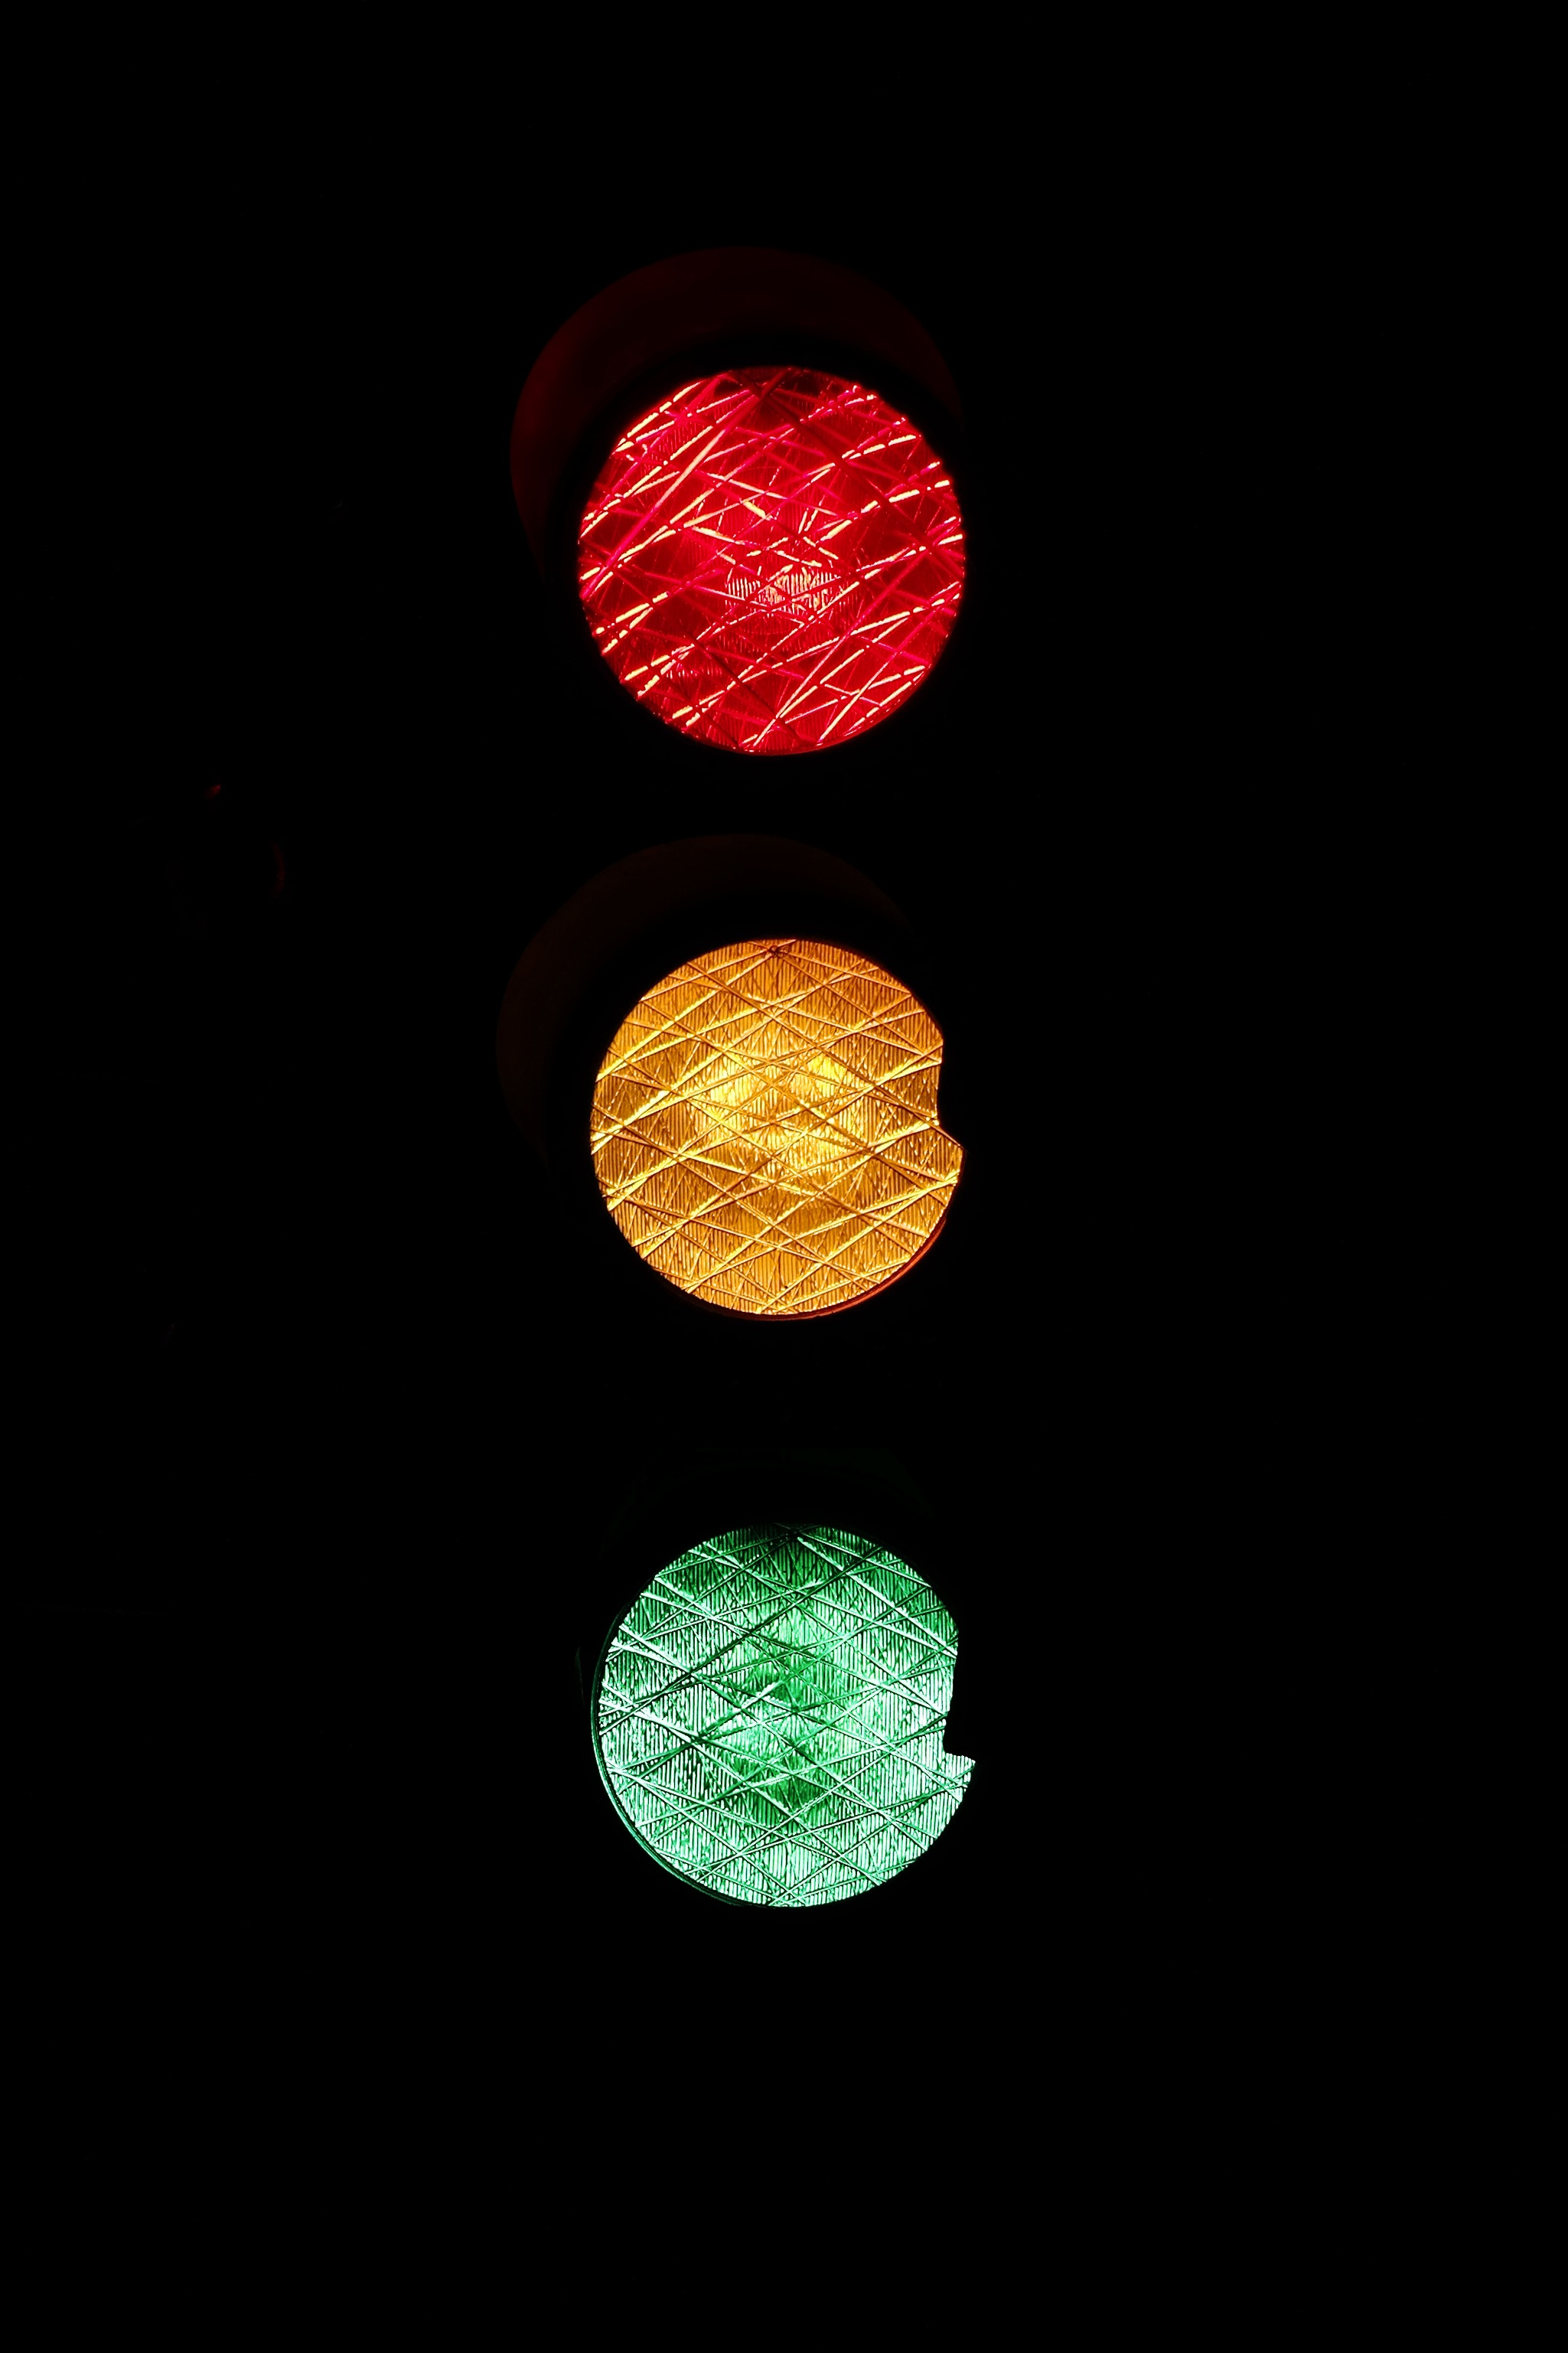 Car Black And Green Wallpaper Traffic Lights 183 Free Stock Photo